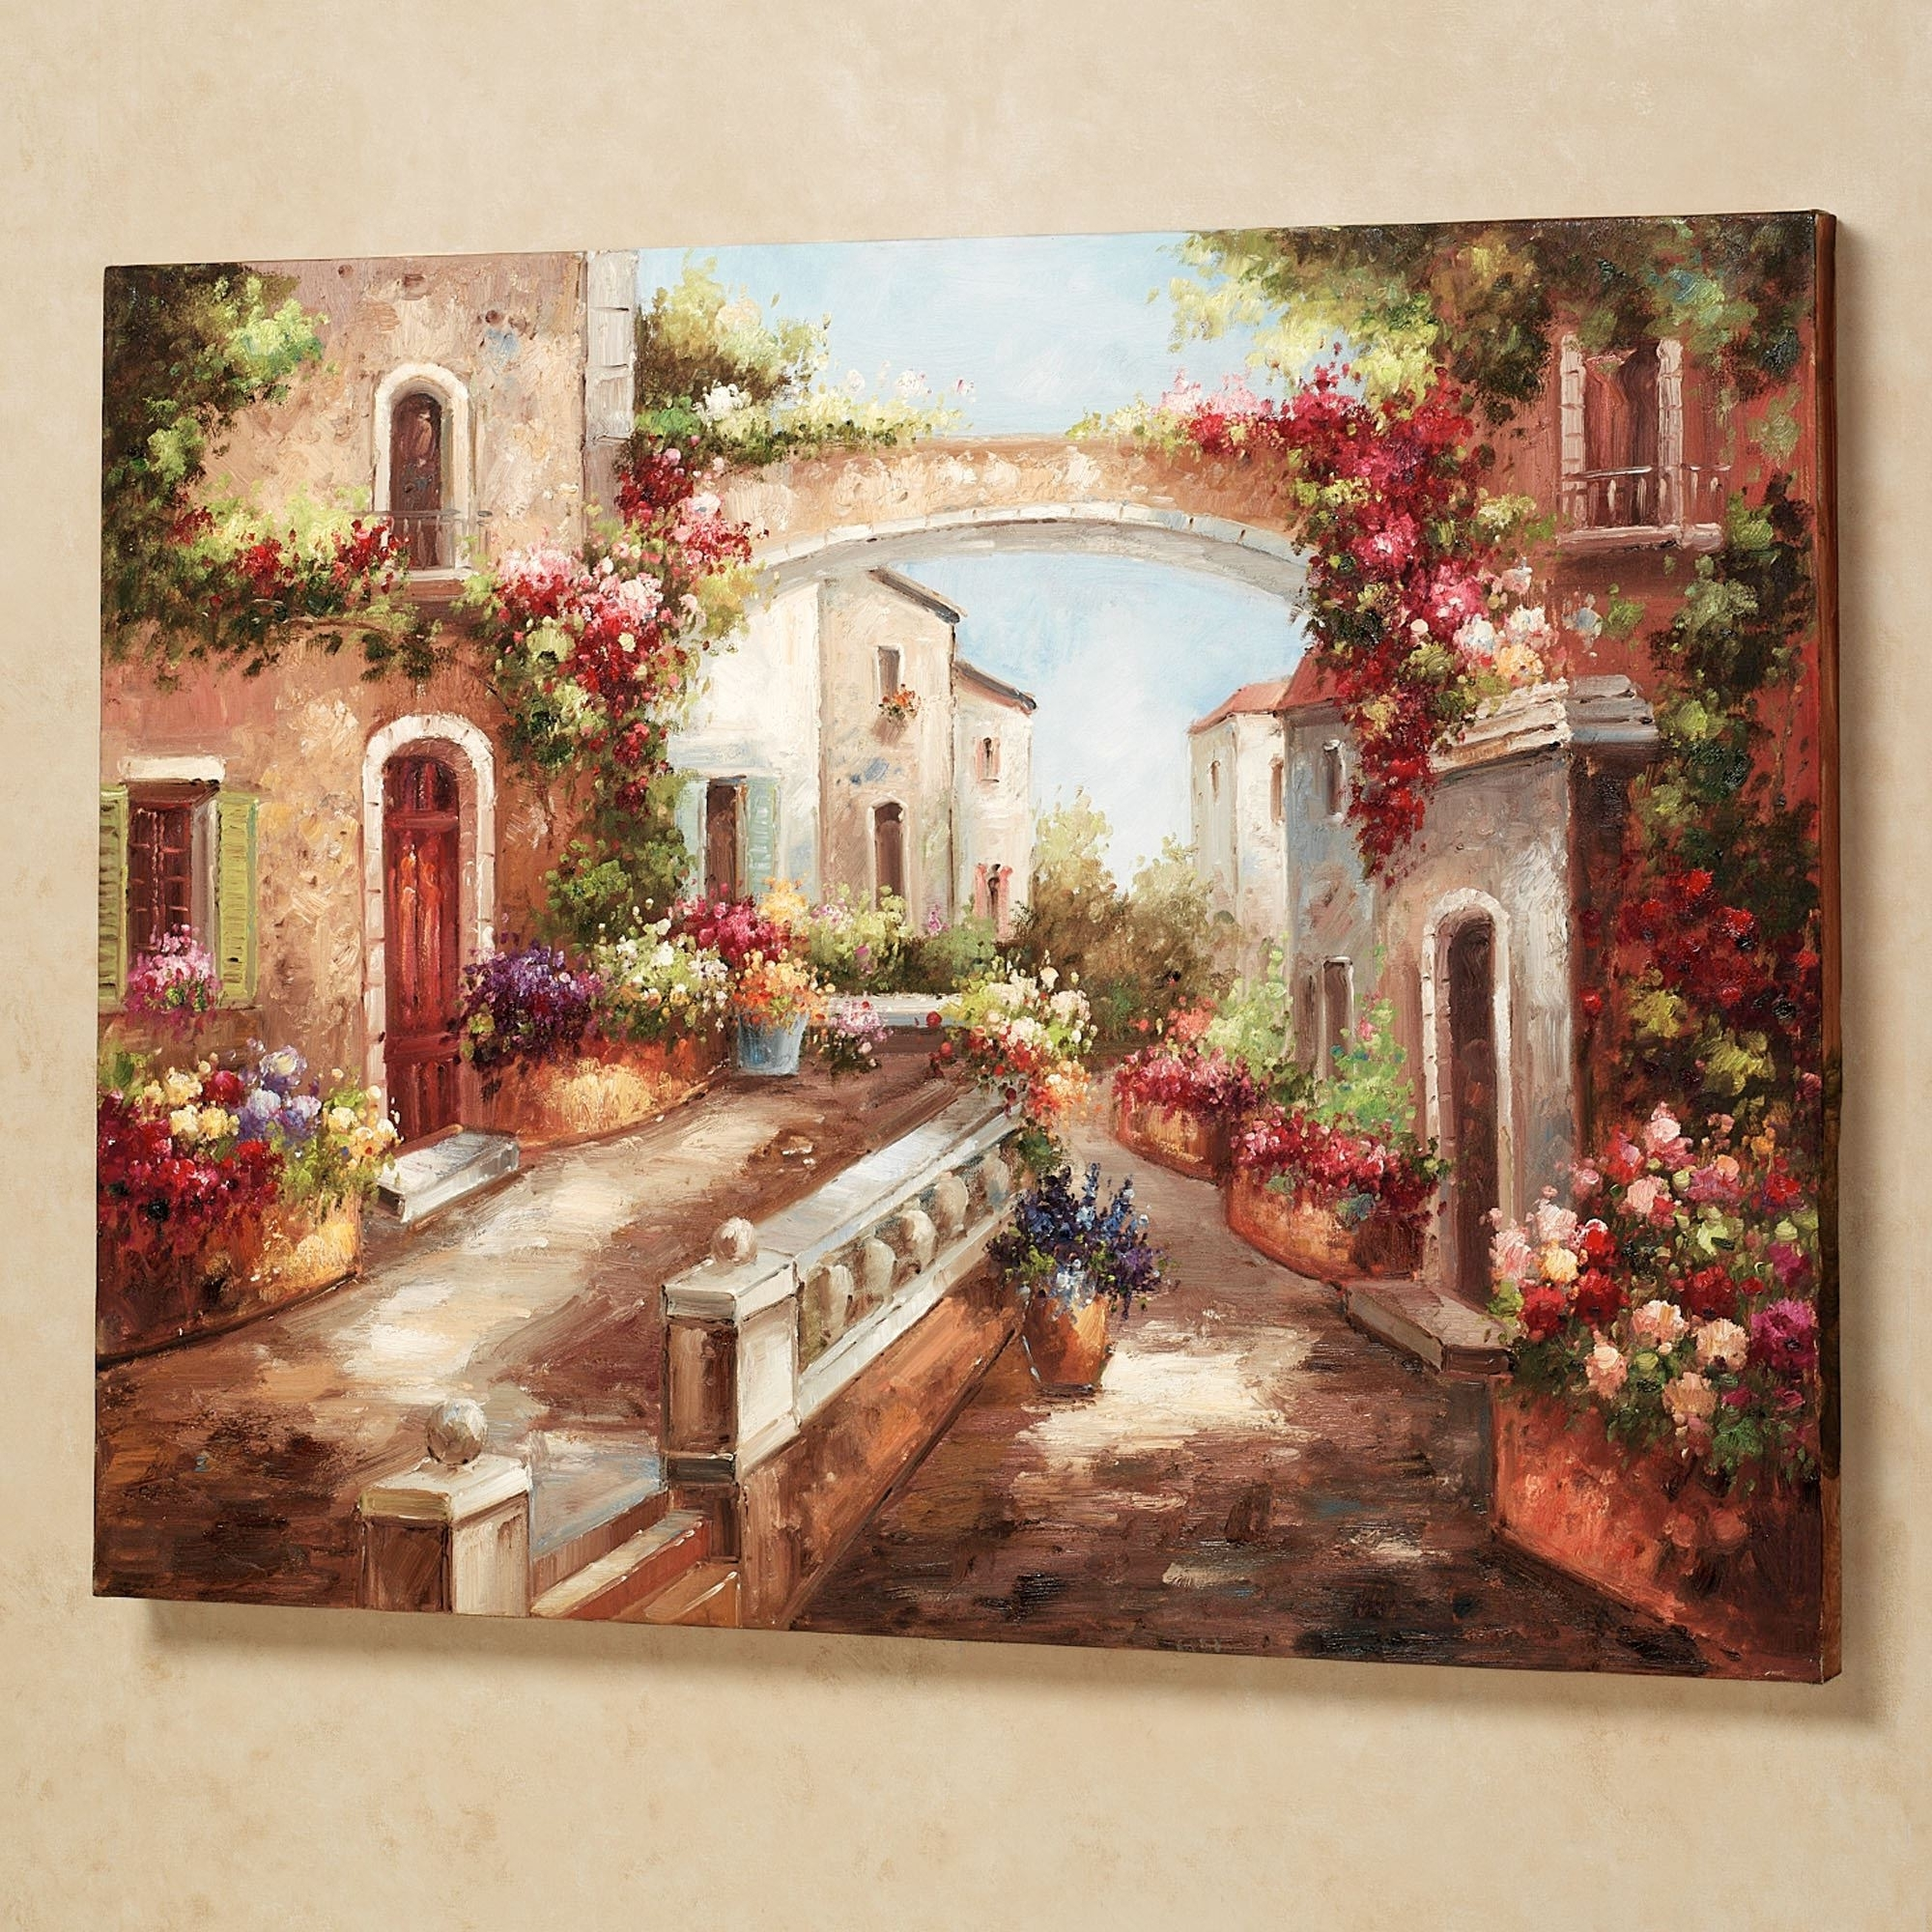 Vintage Italian Wall Art Within Most Current Wall Art Design: Tuscan Wall Art Rectangle Architecture Buildings (View 13 of 15)